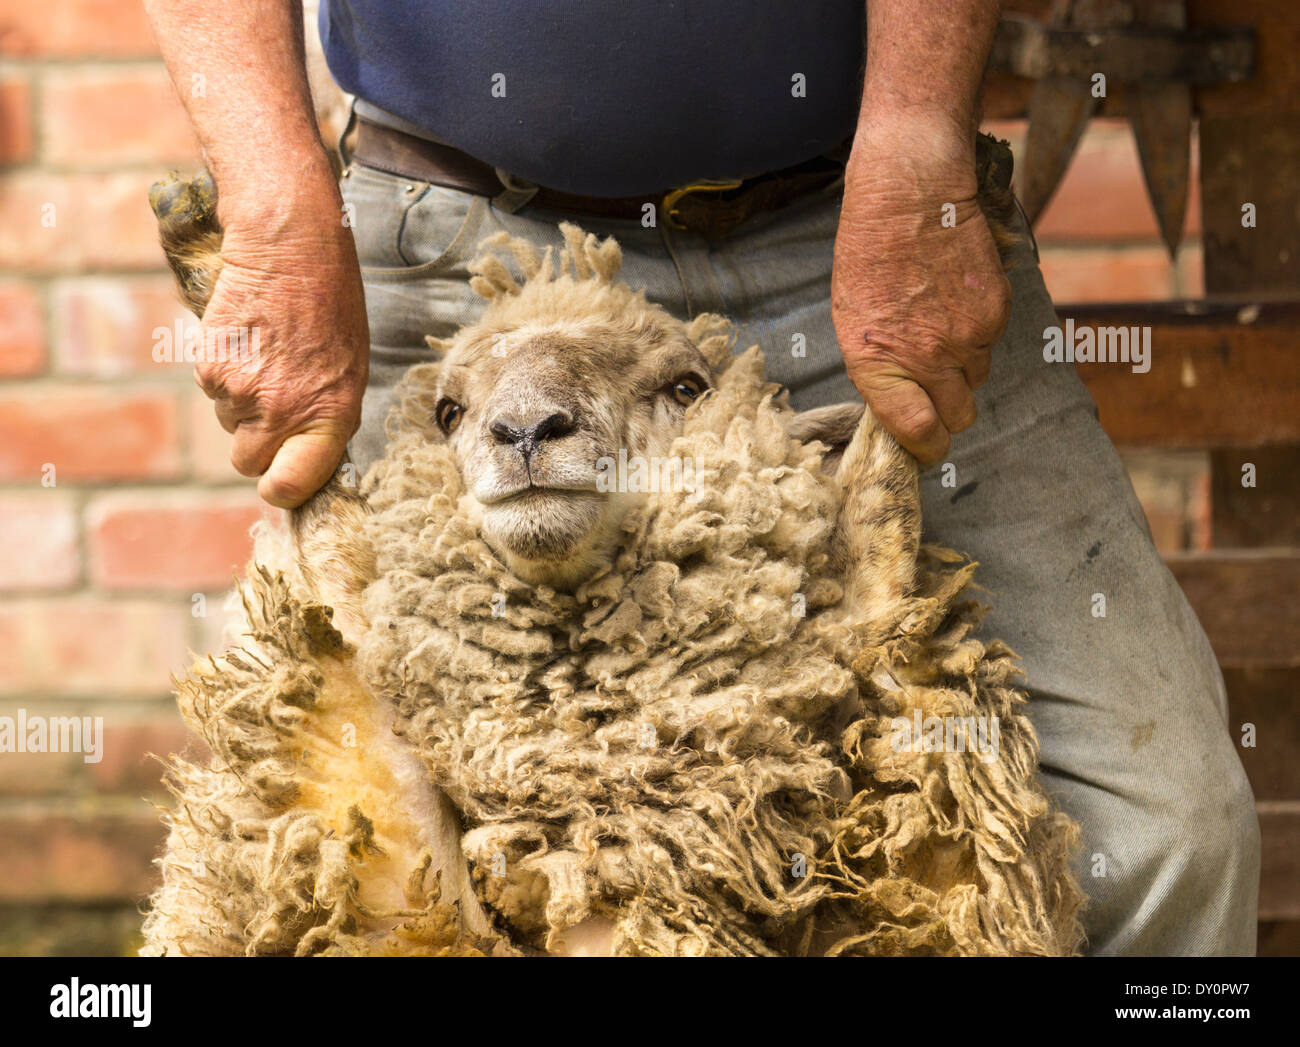 New Zealand Sheep Farming Stock Photos New Zealand Sheep